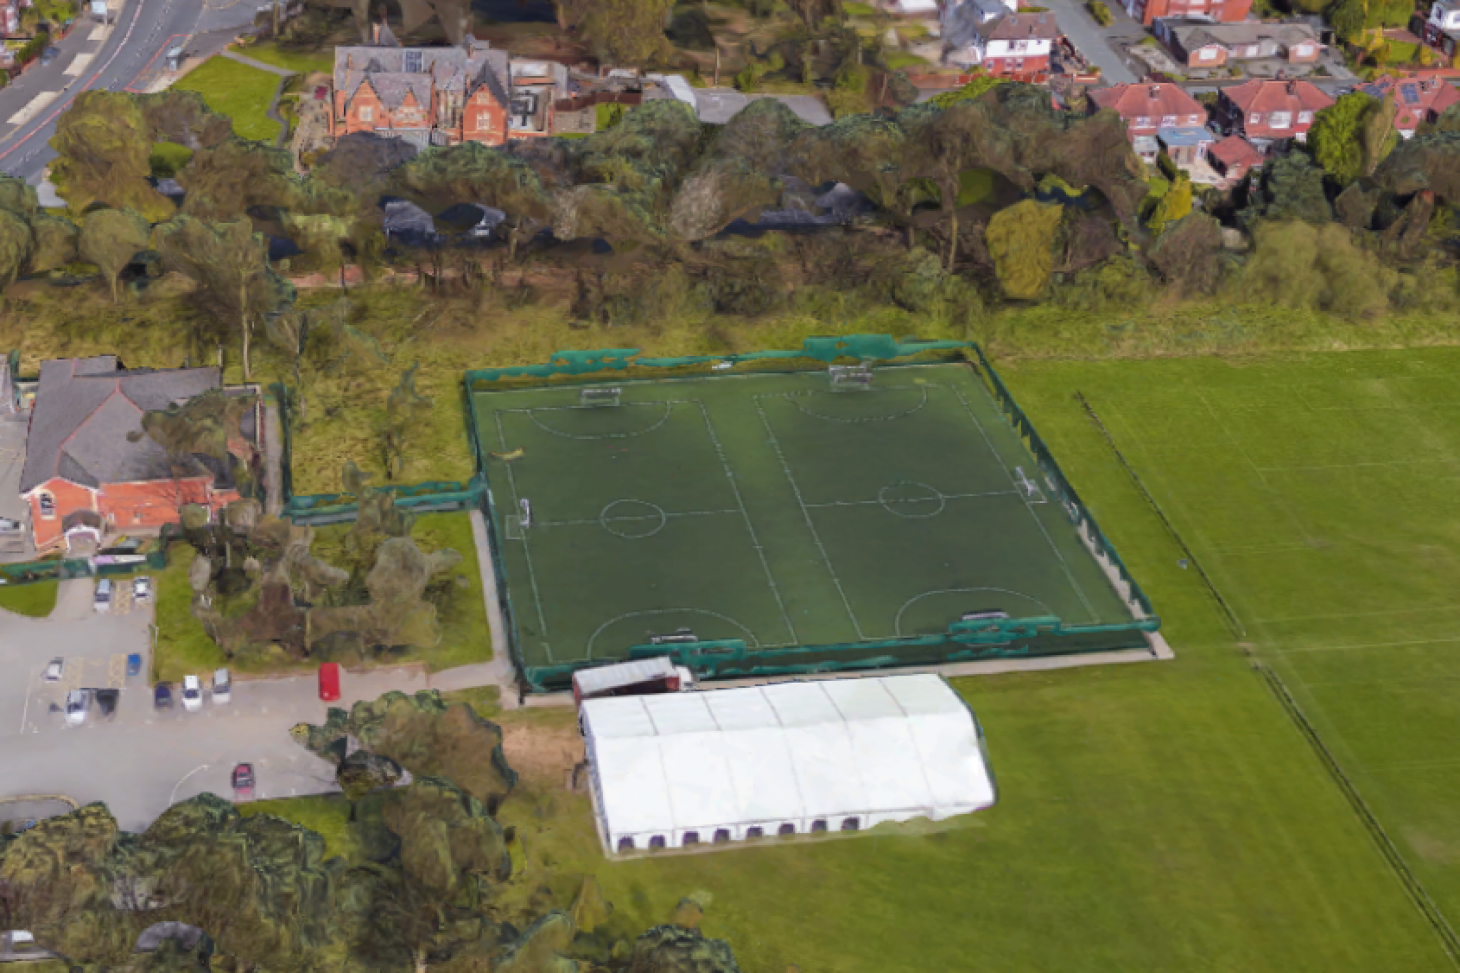 Manchester Maccabi Community And Sports Club 5 a side | 3G Astroturf football pitch